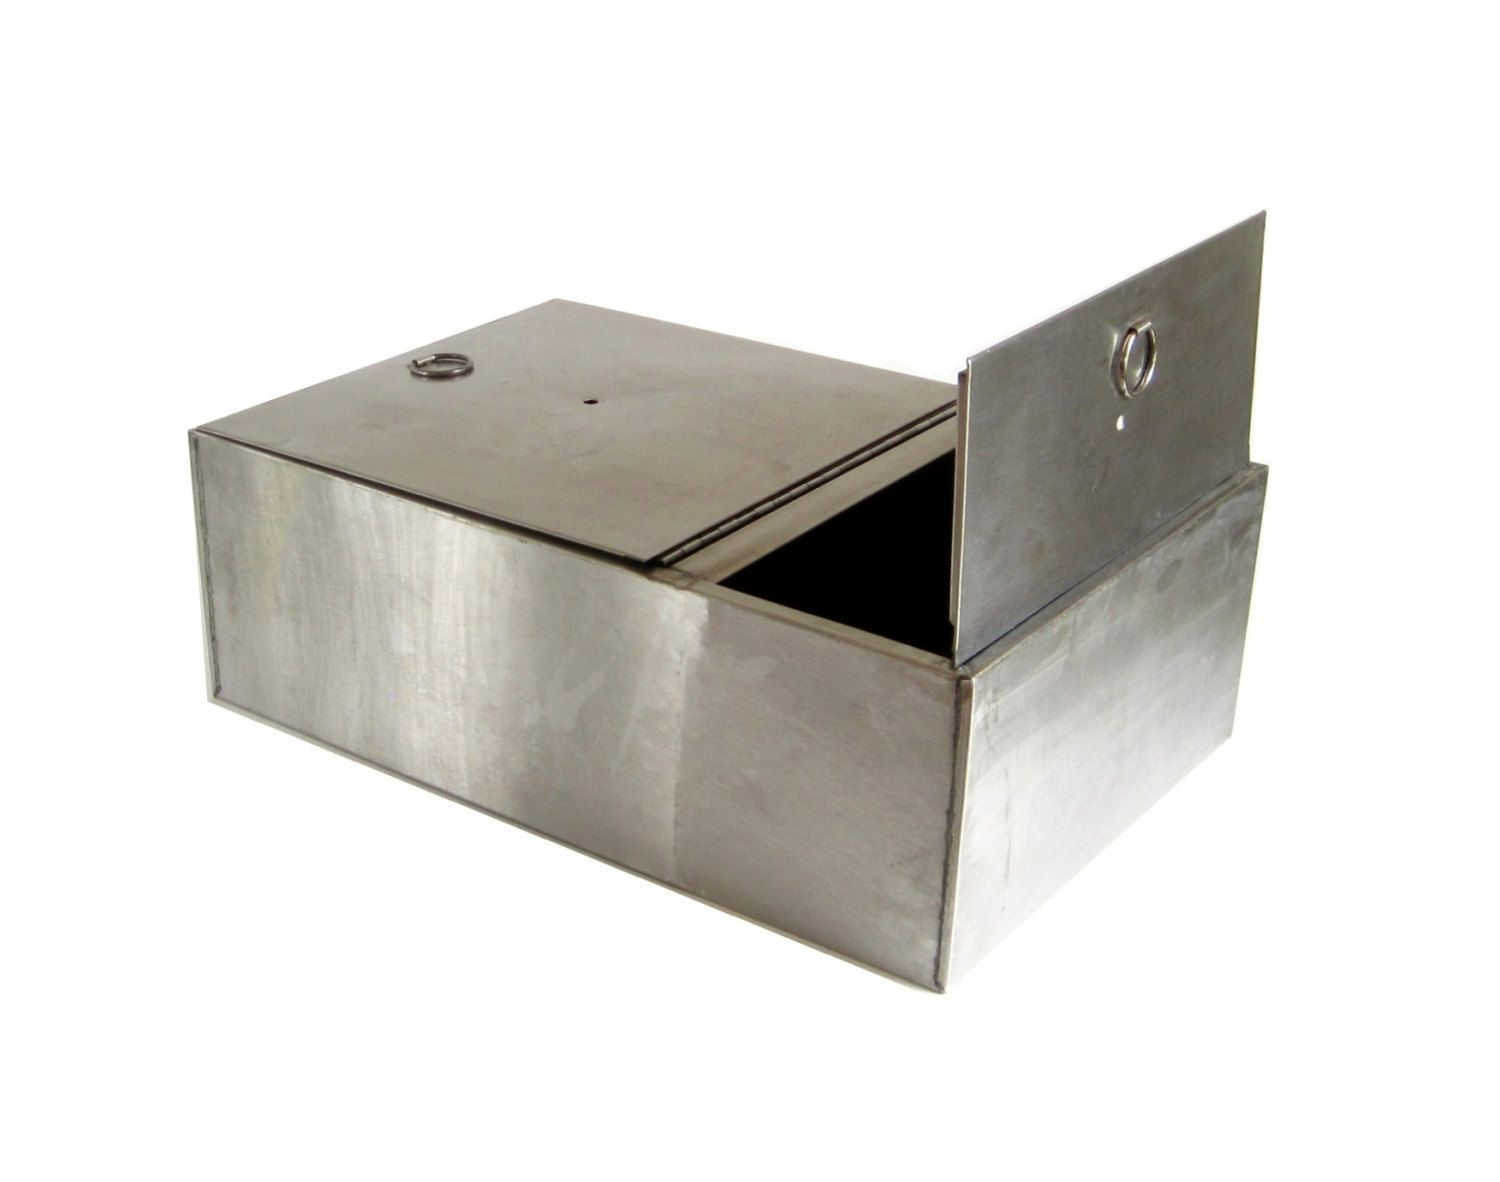 New To Lauraslastditch On Etsy Stainless Steel Bread Box Drawer Insert Kitchen Cupboard Drawer Liner